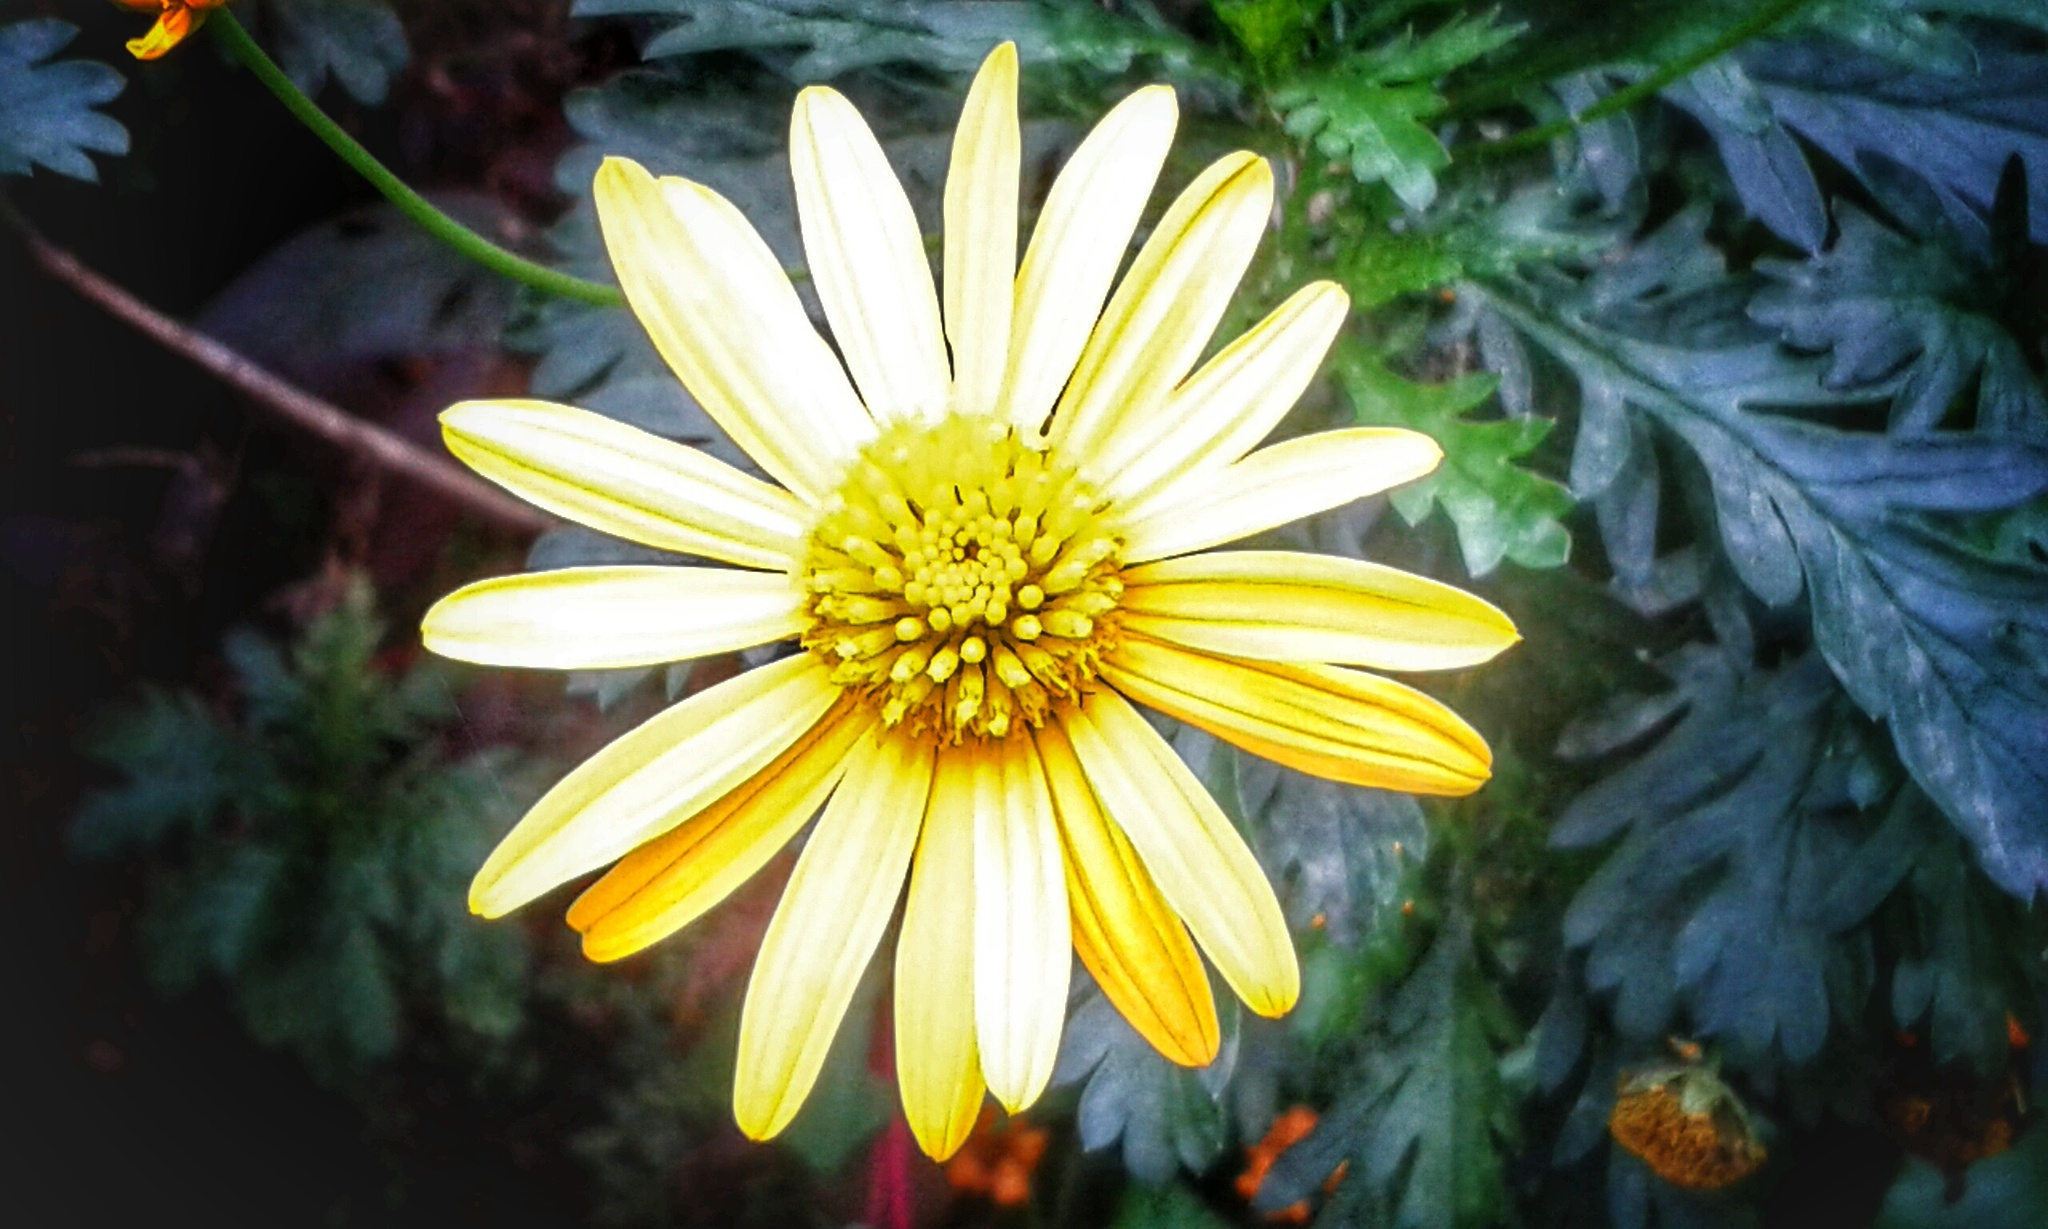 Yellow Daisy - Monserrate Park, Sintra by Jose Coelho